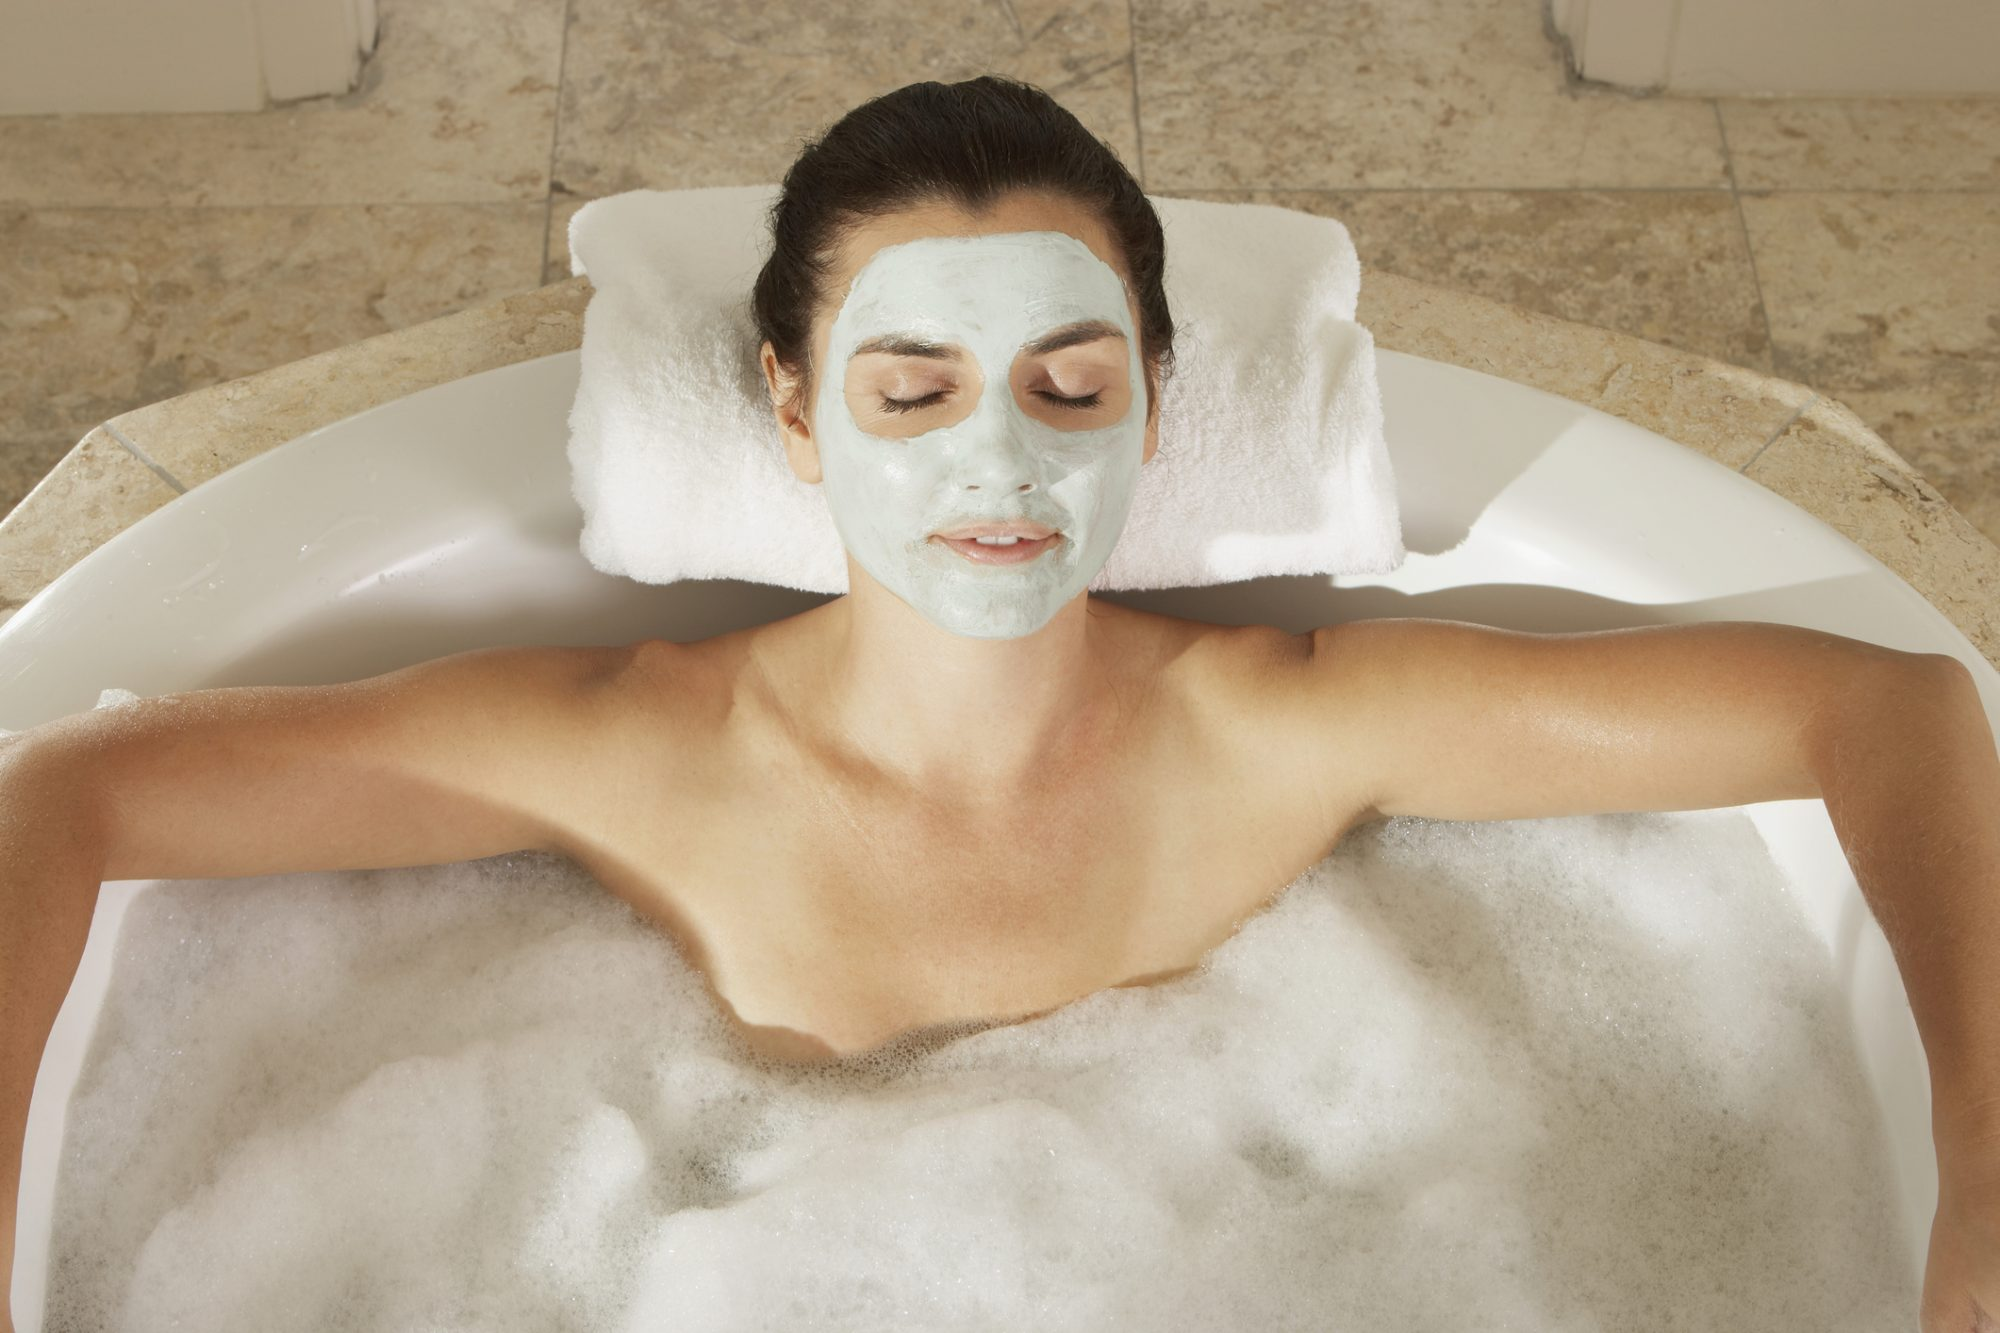 High angle view of a young woman in a bubble bath with her eyes closed